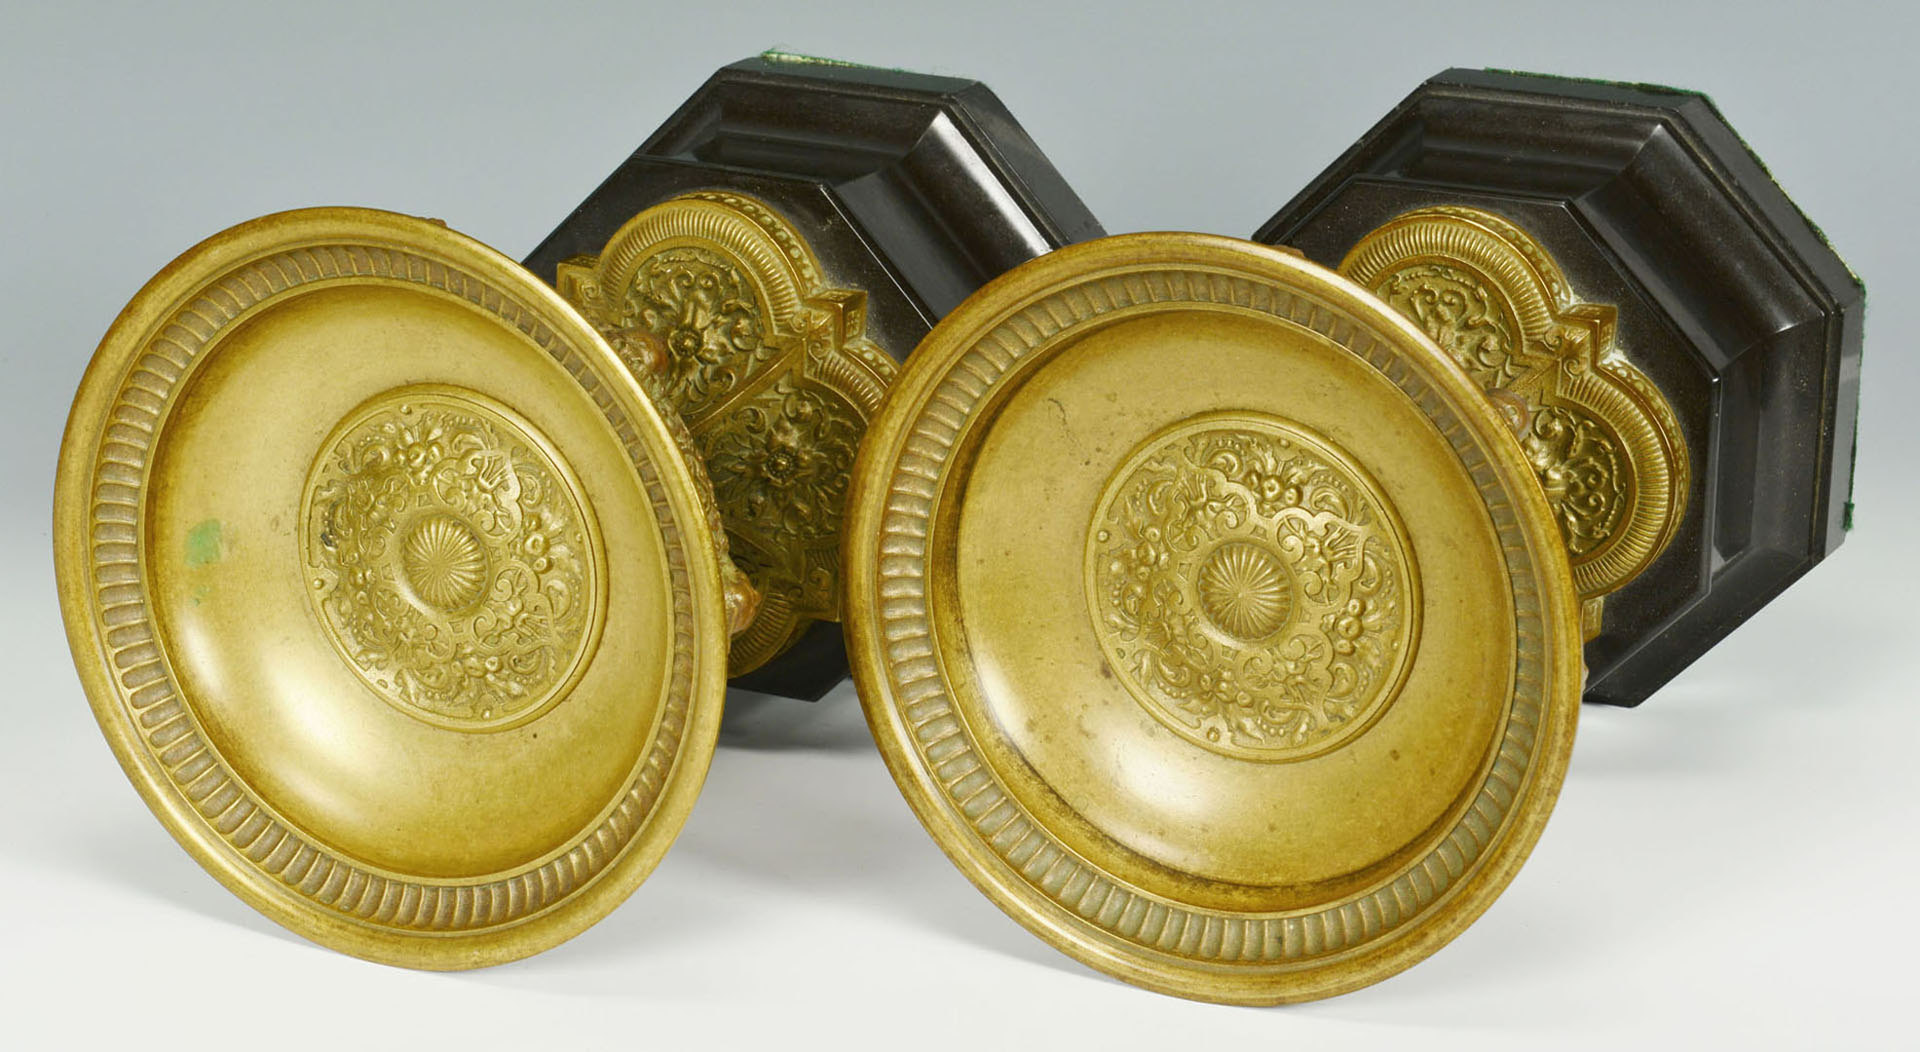 Lot 28: Pr. Classical Bronze Urns Mounted on Black Bases